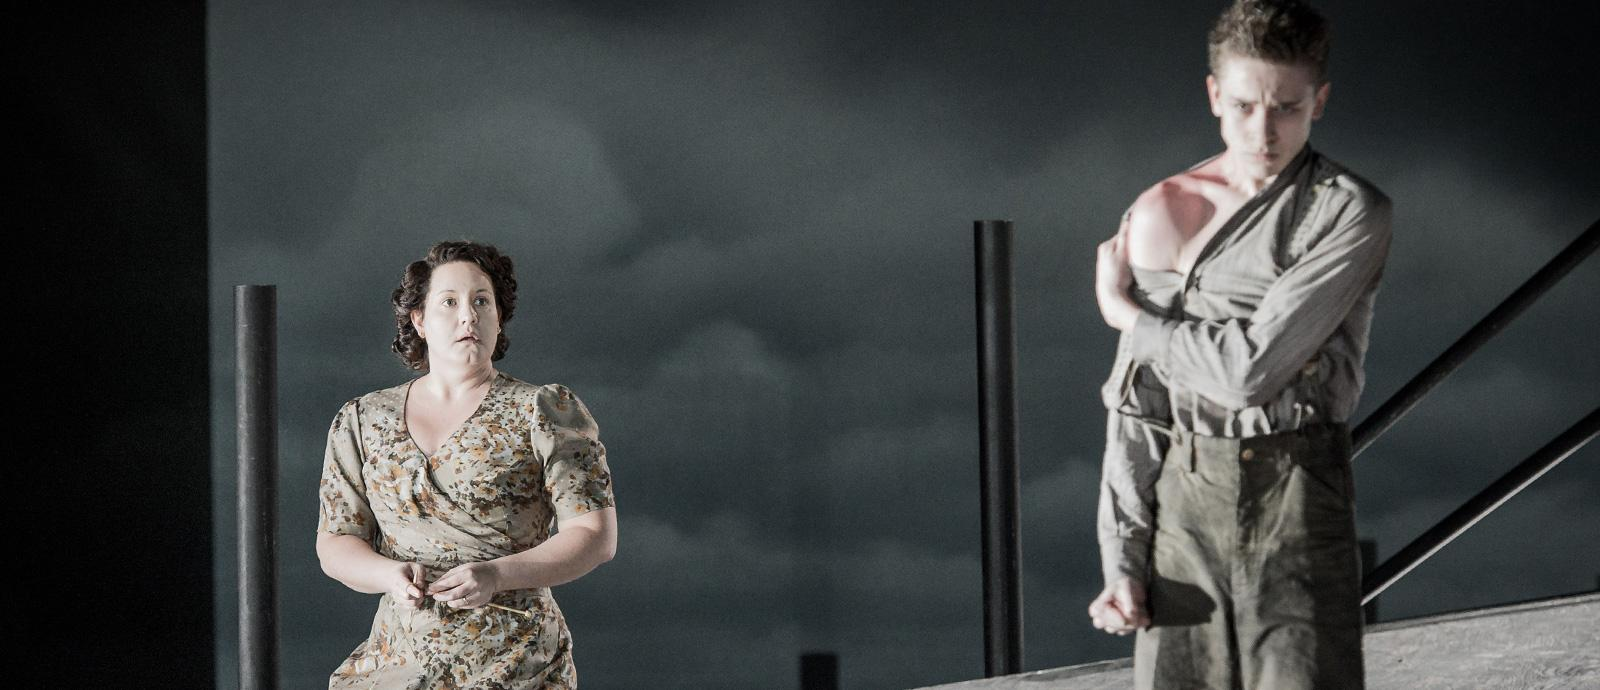 ENO's Peter Grimes - Elza Van Den Heever as Ellen Orford and Timothy Kirrage as the Apprentice.Photo by Robert Workman